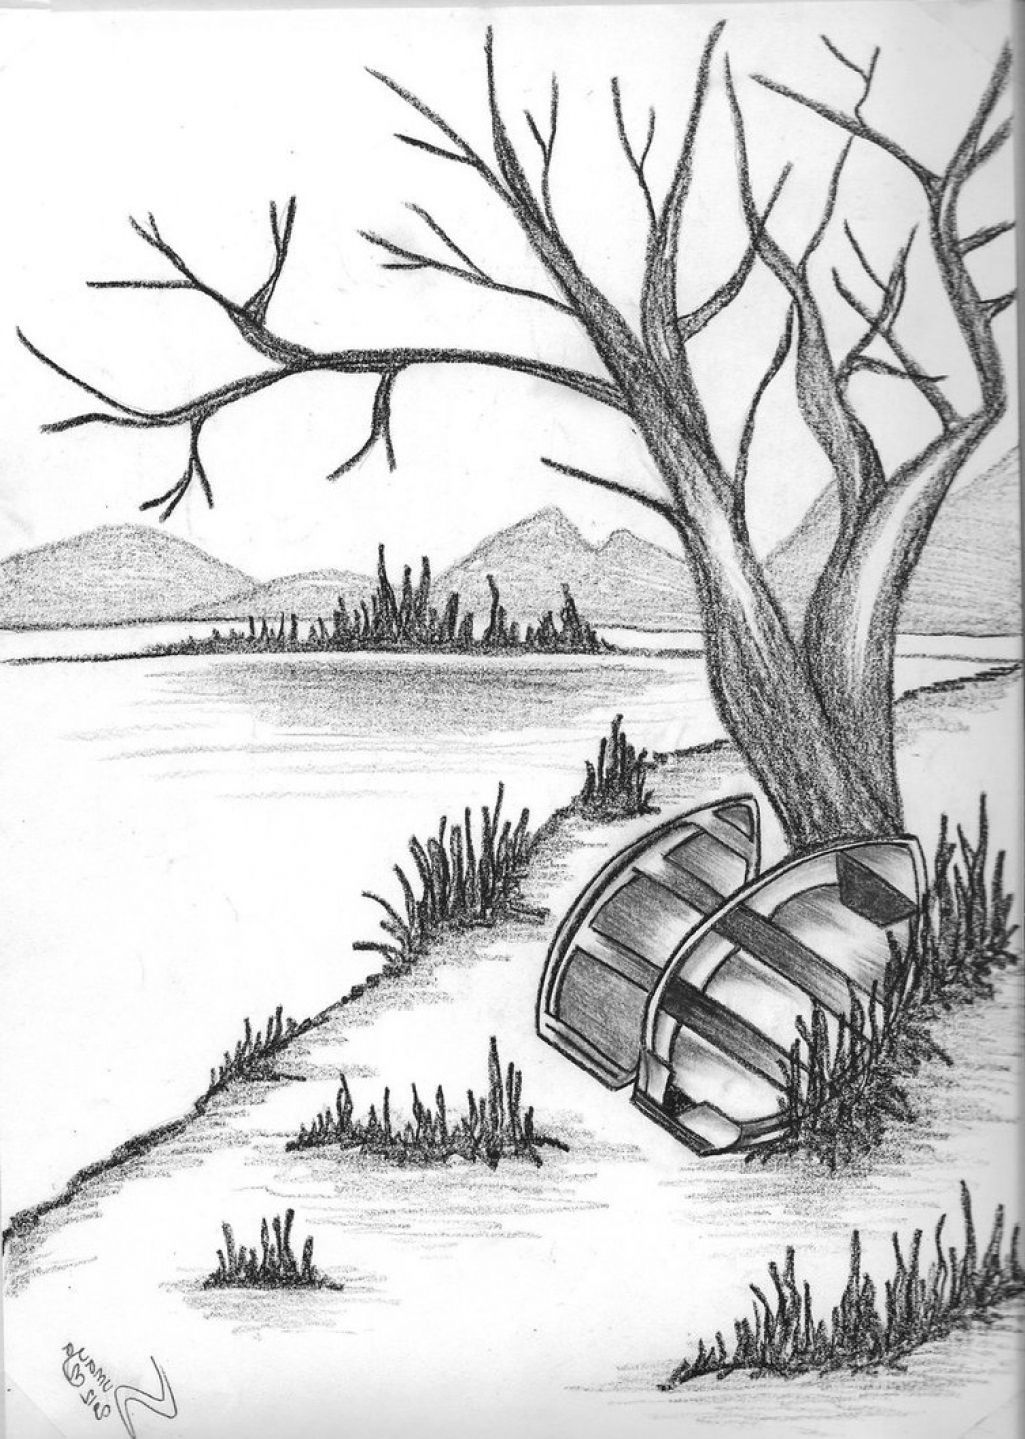 pencil drawing of natural scenery simple pencil drawings nature pictures of drawing sketch pencil [ 1025 x 1439 Pixel ]